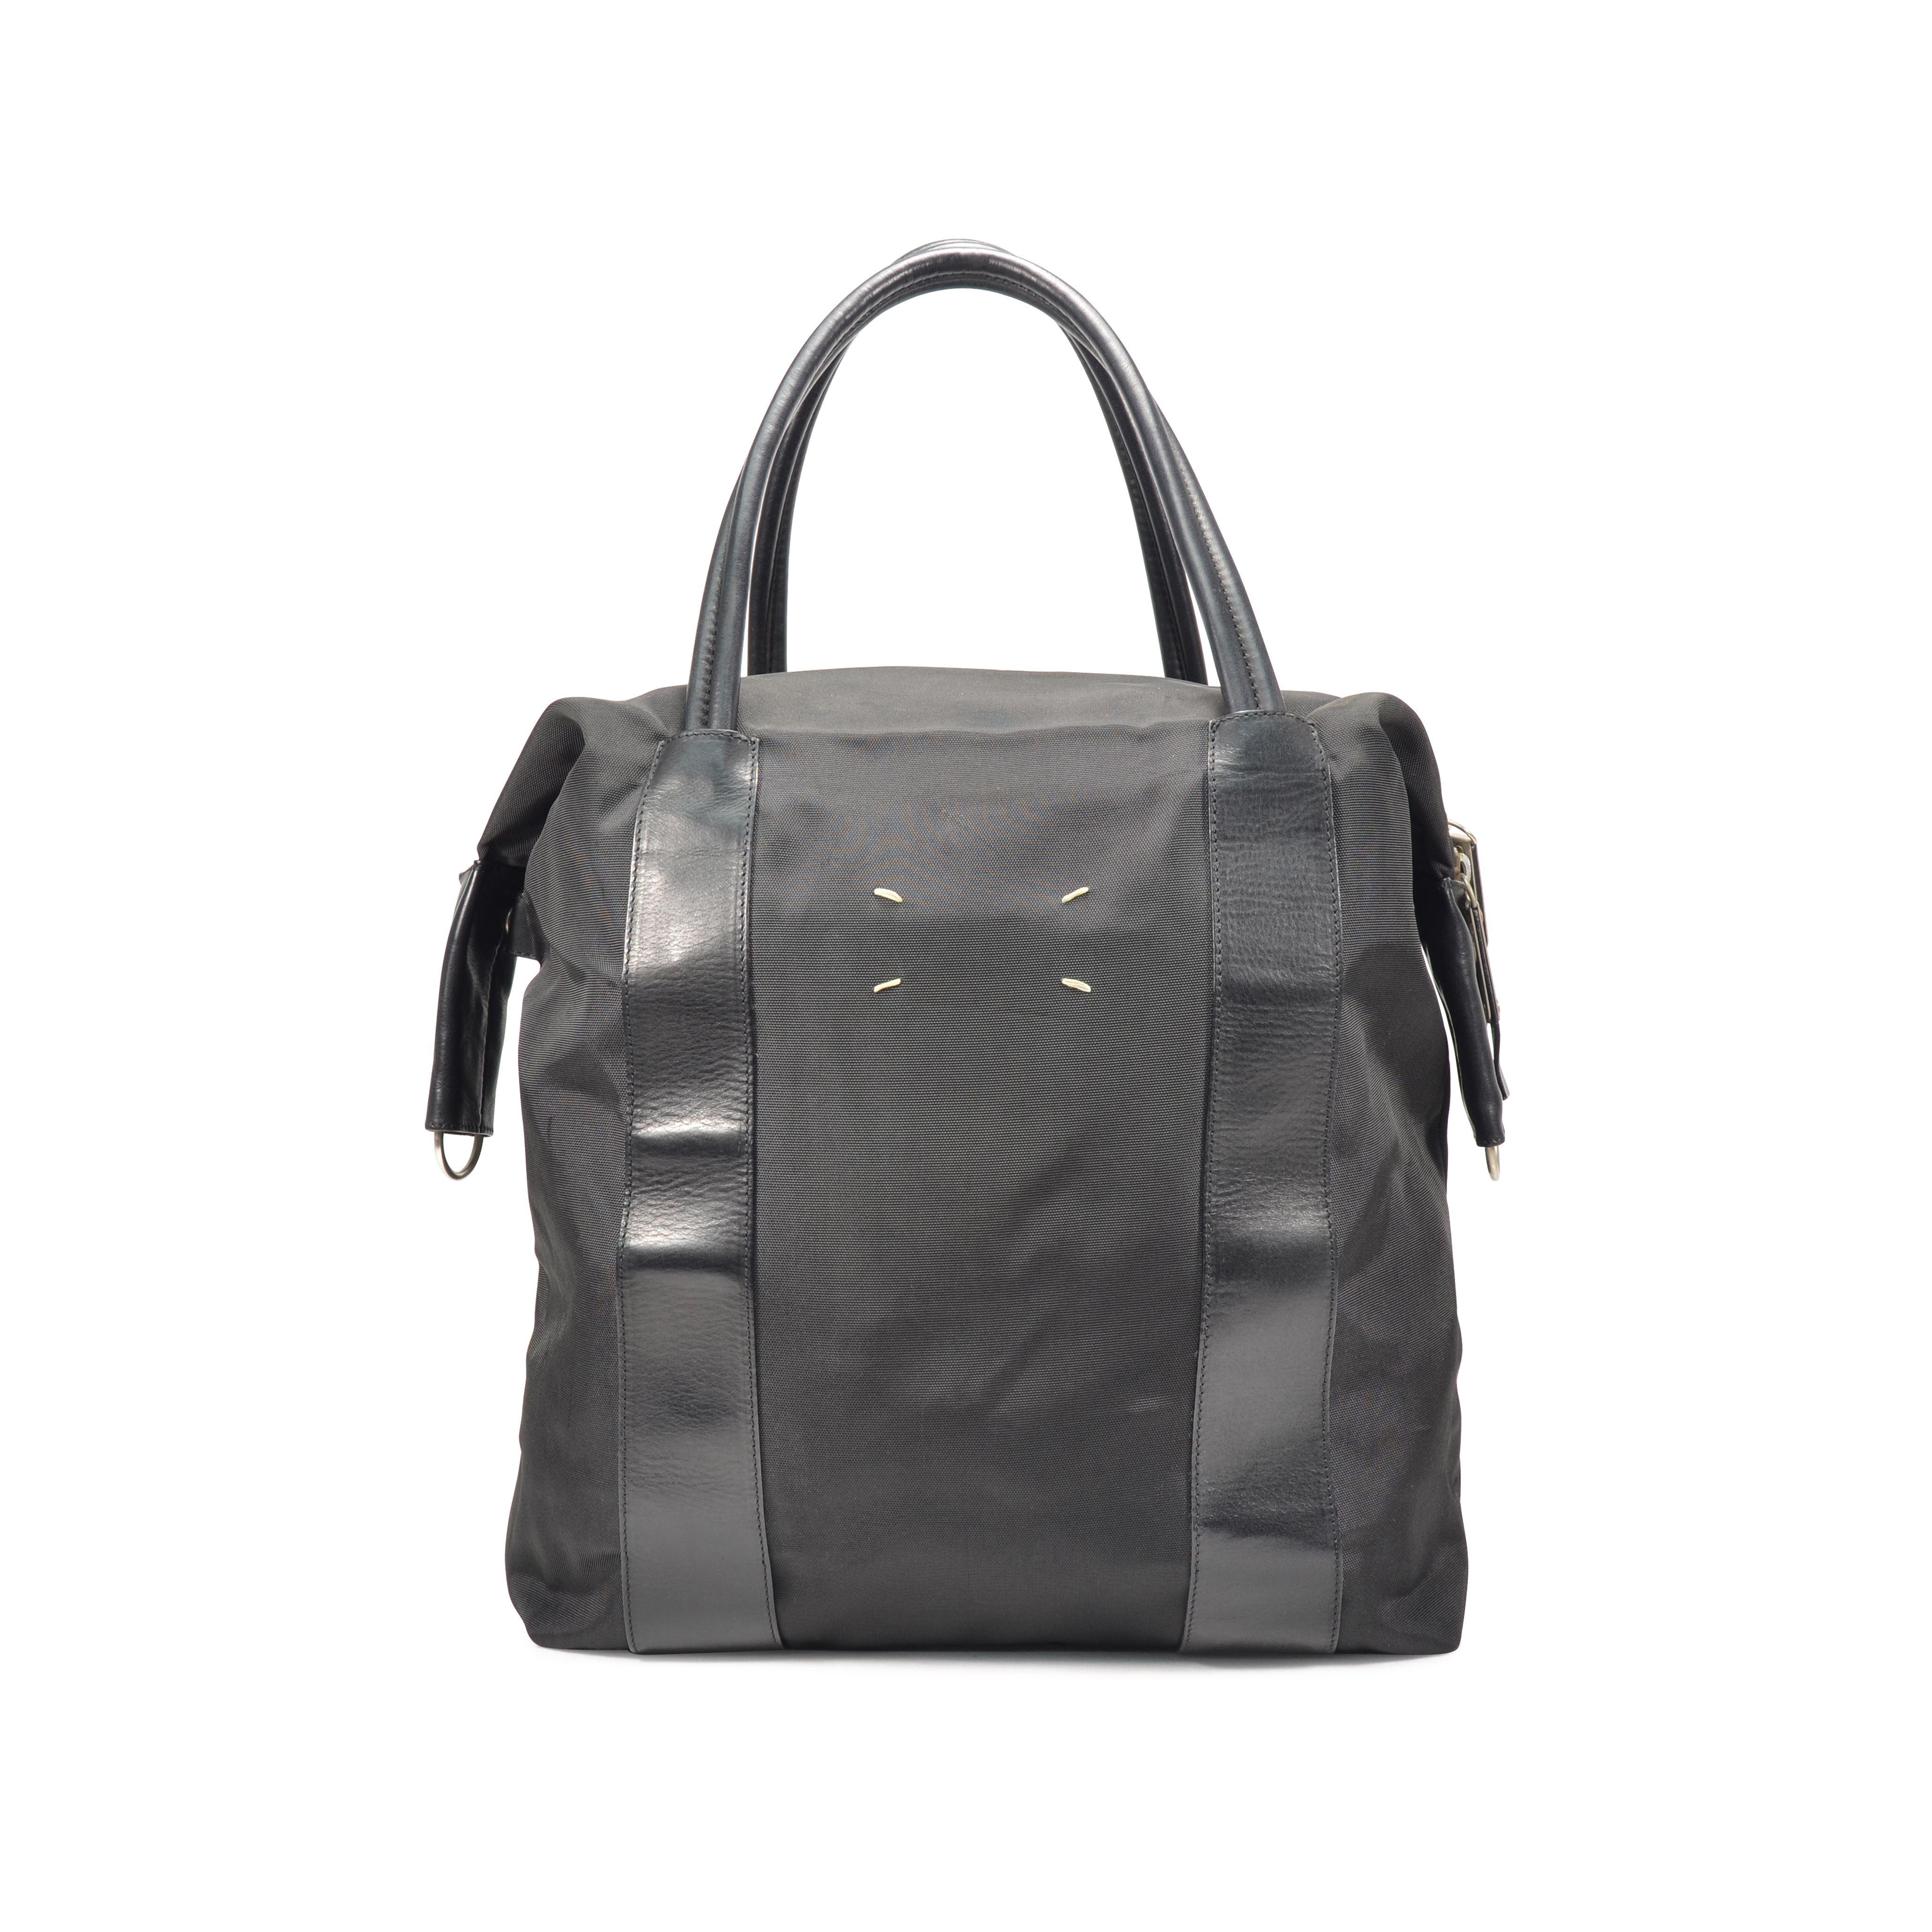 f14f52a6805e4 Authentic Second Hand Maison Martin Margiela Canvas and Leather Tote Bag  (PSS-320-00008)